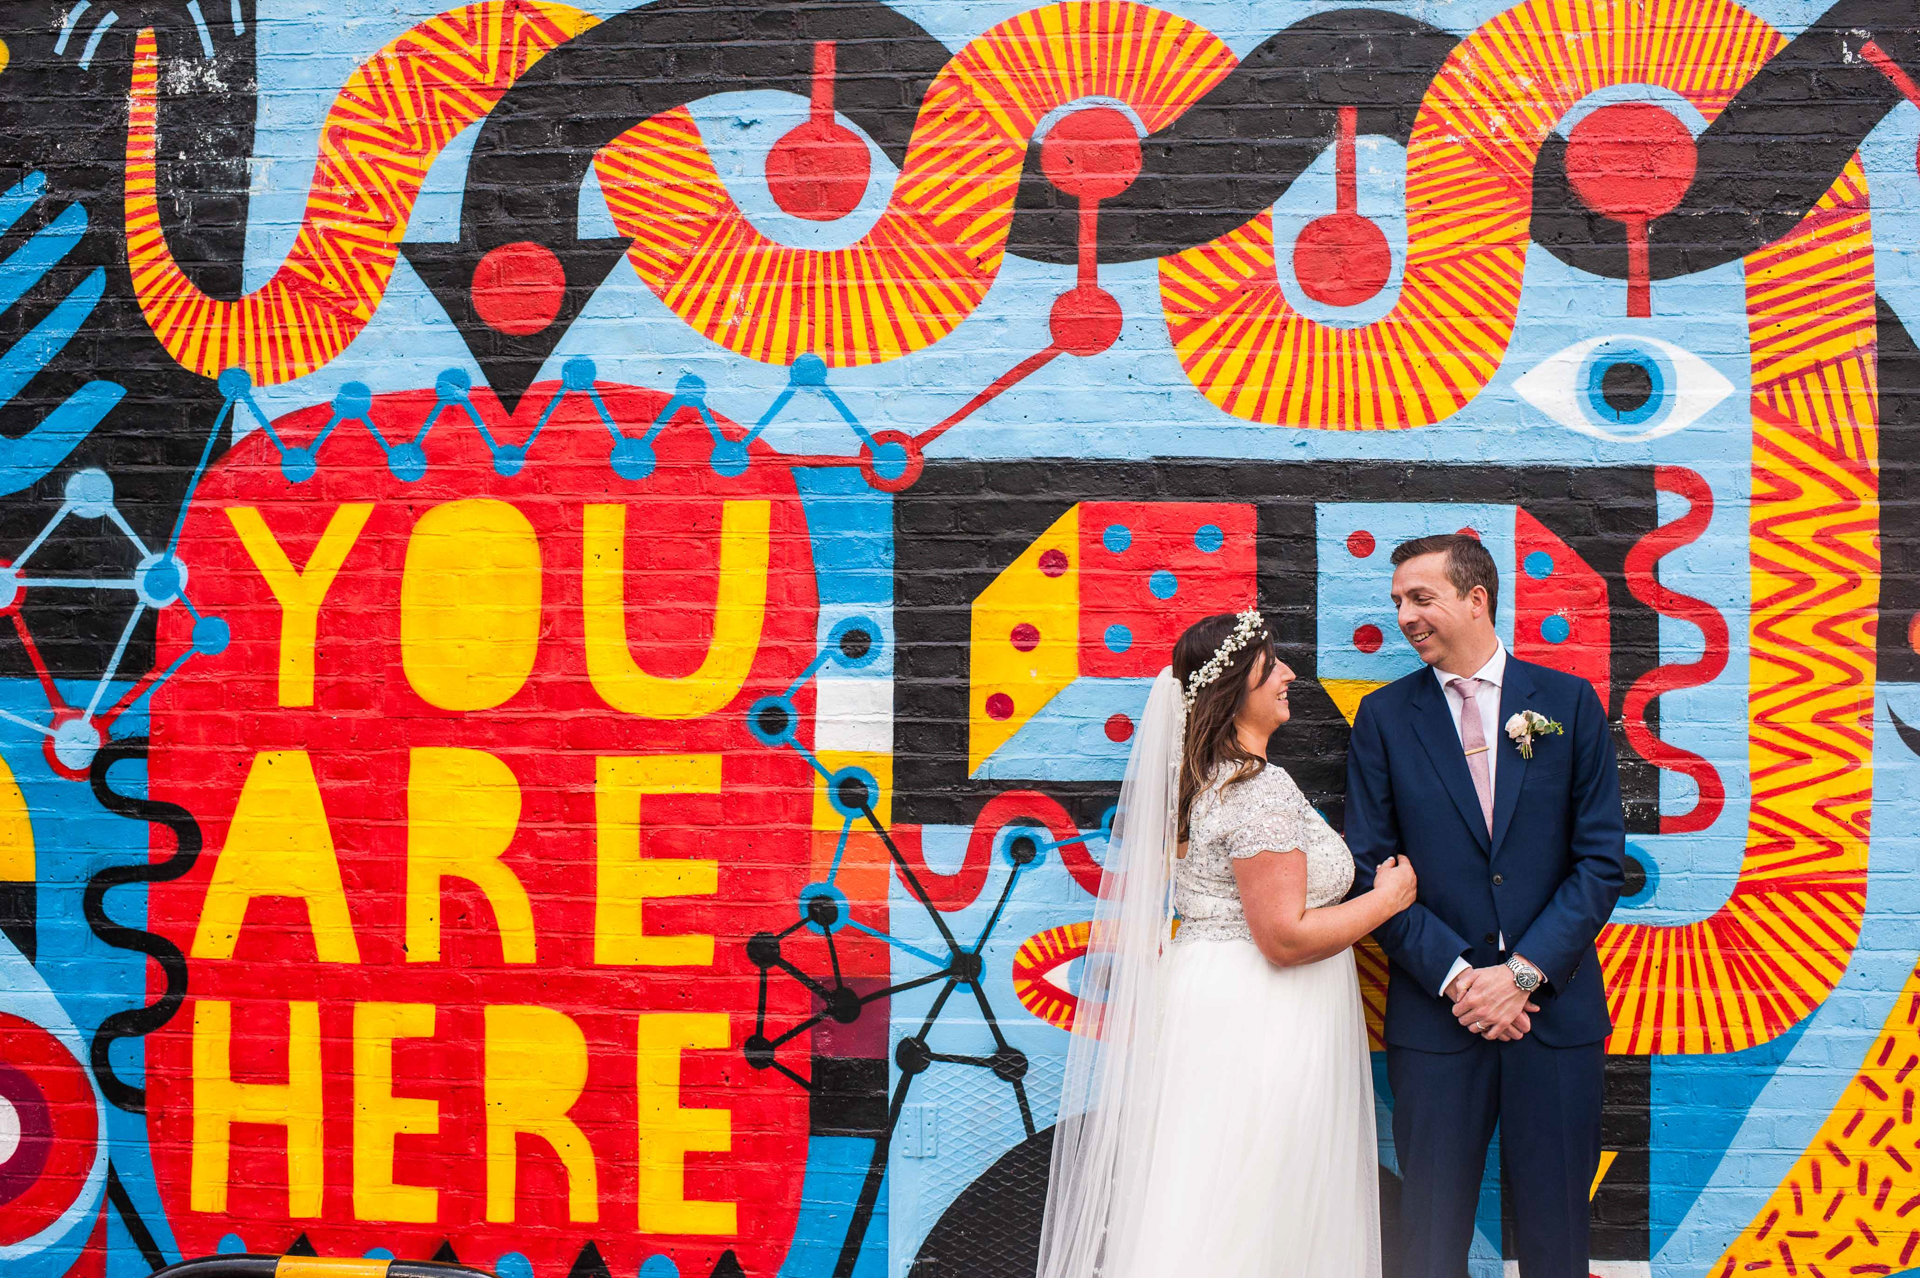 London Wedding Highlights - London is my favourite city in the whole world, and London weddings have a vibrancy and a character that's all their own. Are you planning a London wedding? Click below for a highlight reel of some of my favourite city celebrations.